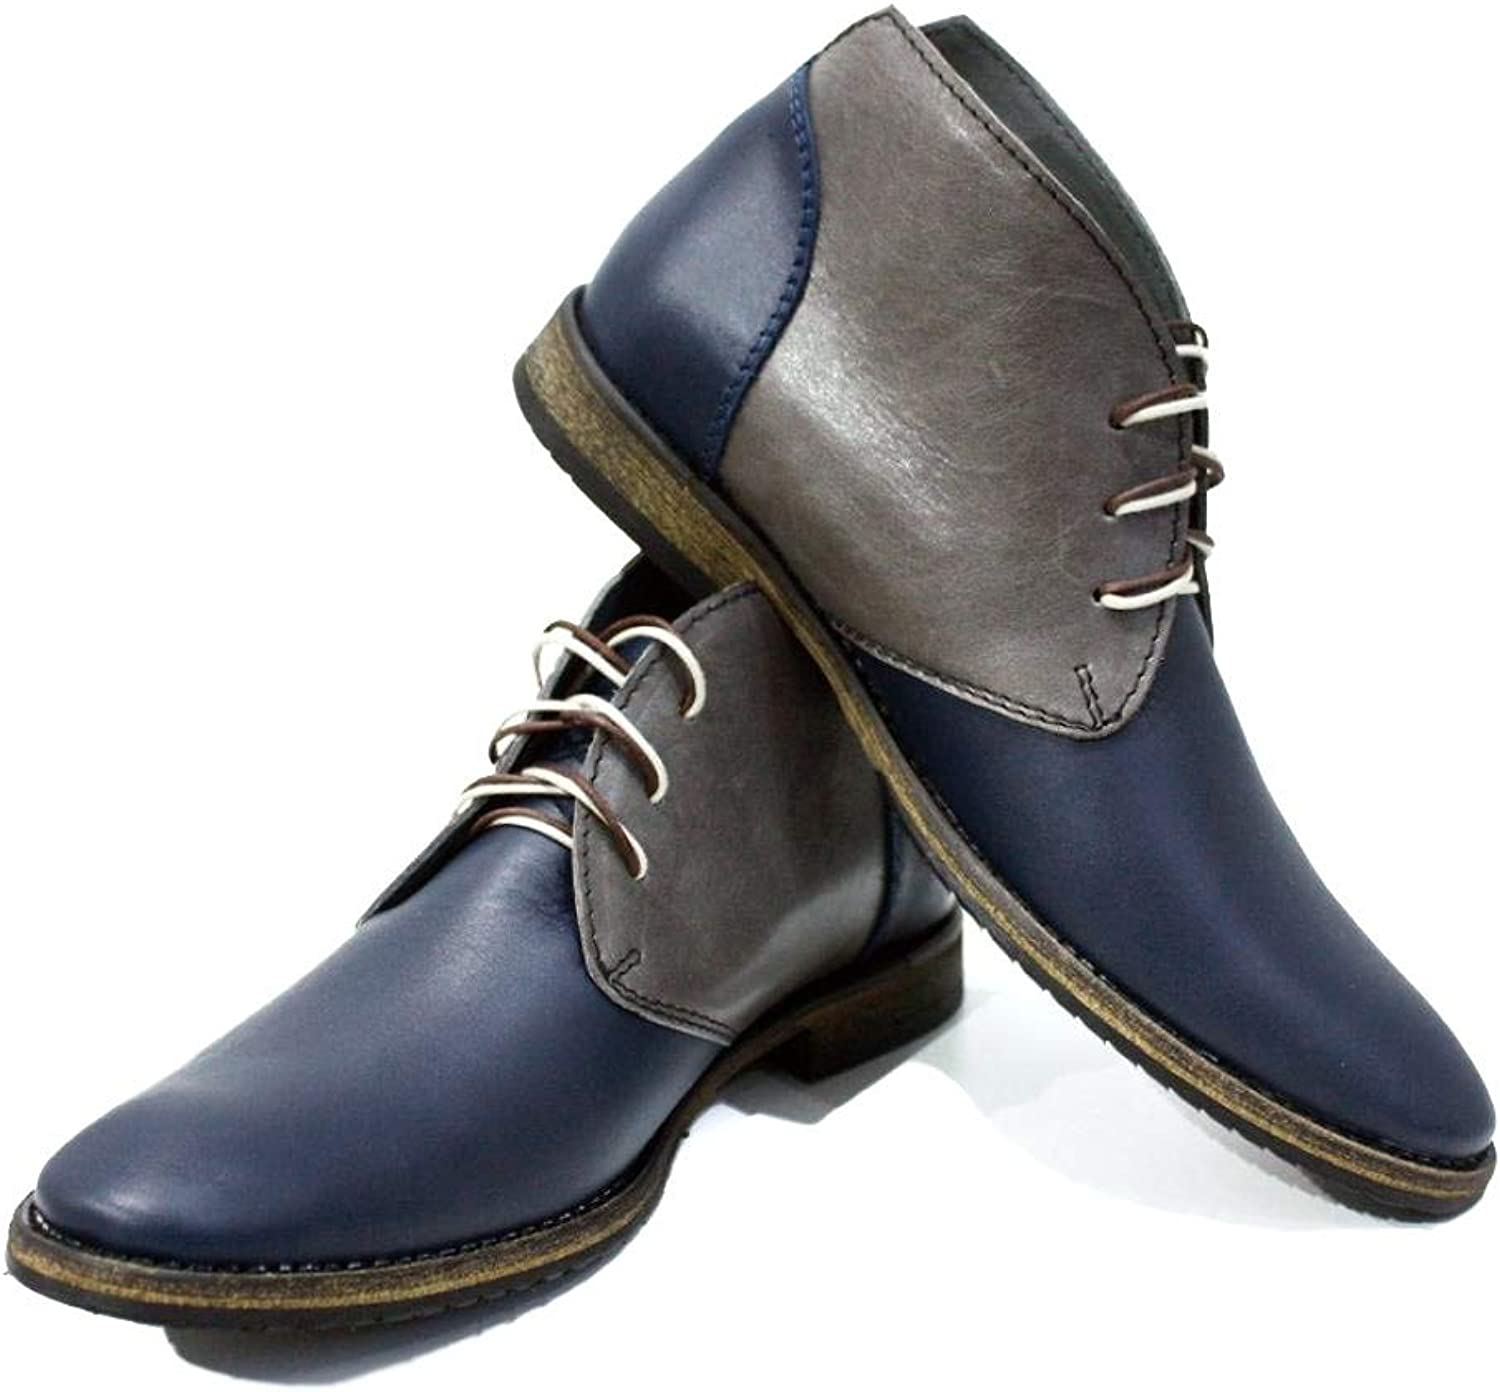 Peppeshoes Modello Parella - Handmade Italian Leather Mens color Navy bluee Ankle Chukka Boots - Cowhide Smooth Leather - Lace-Up